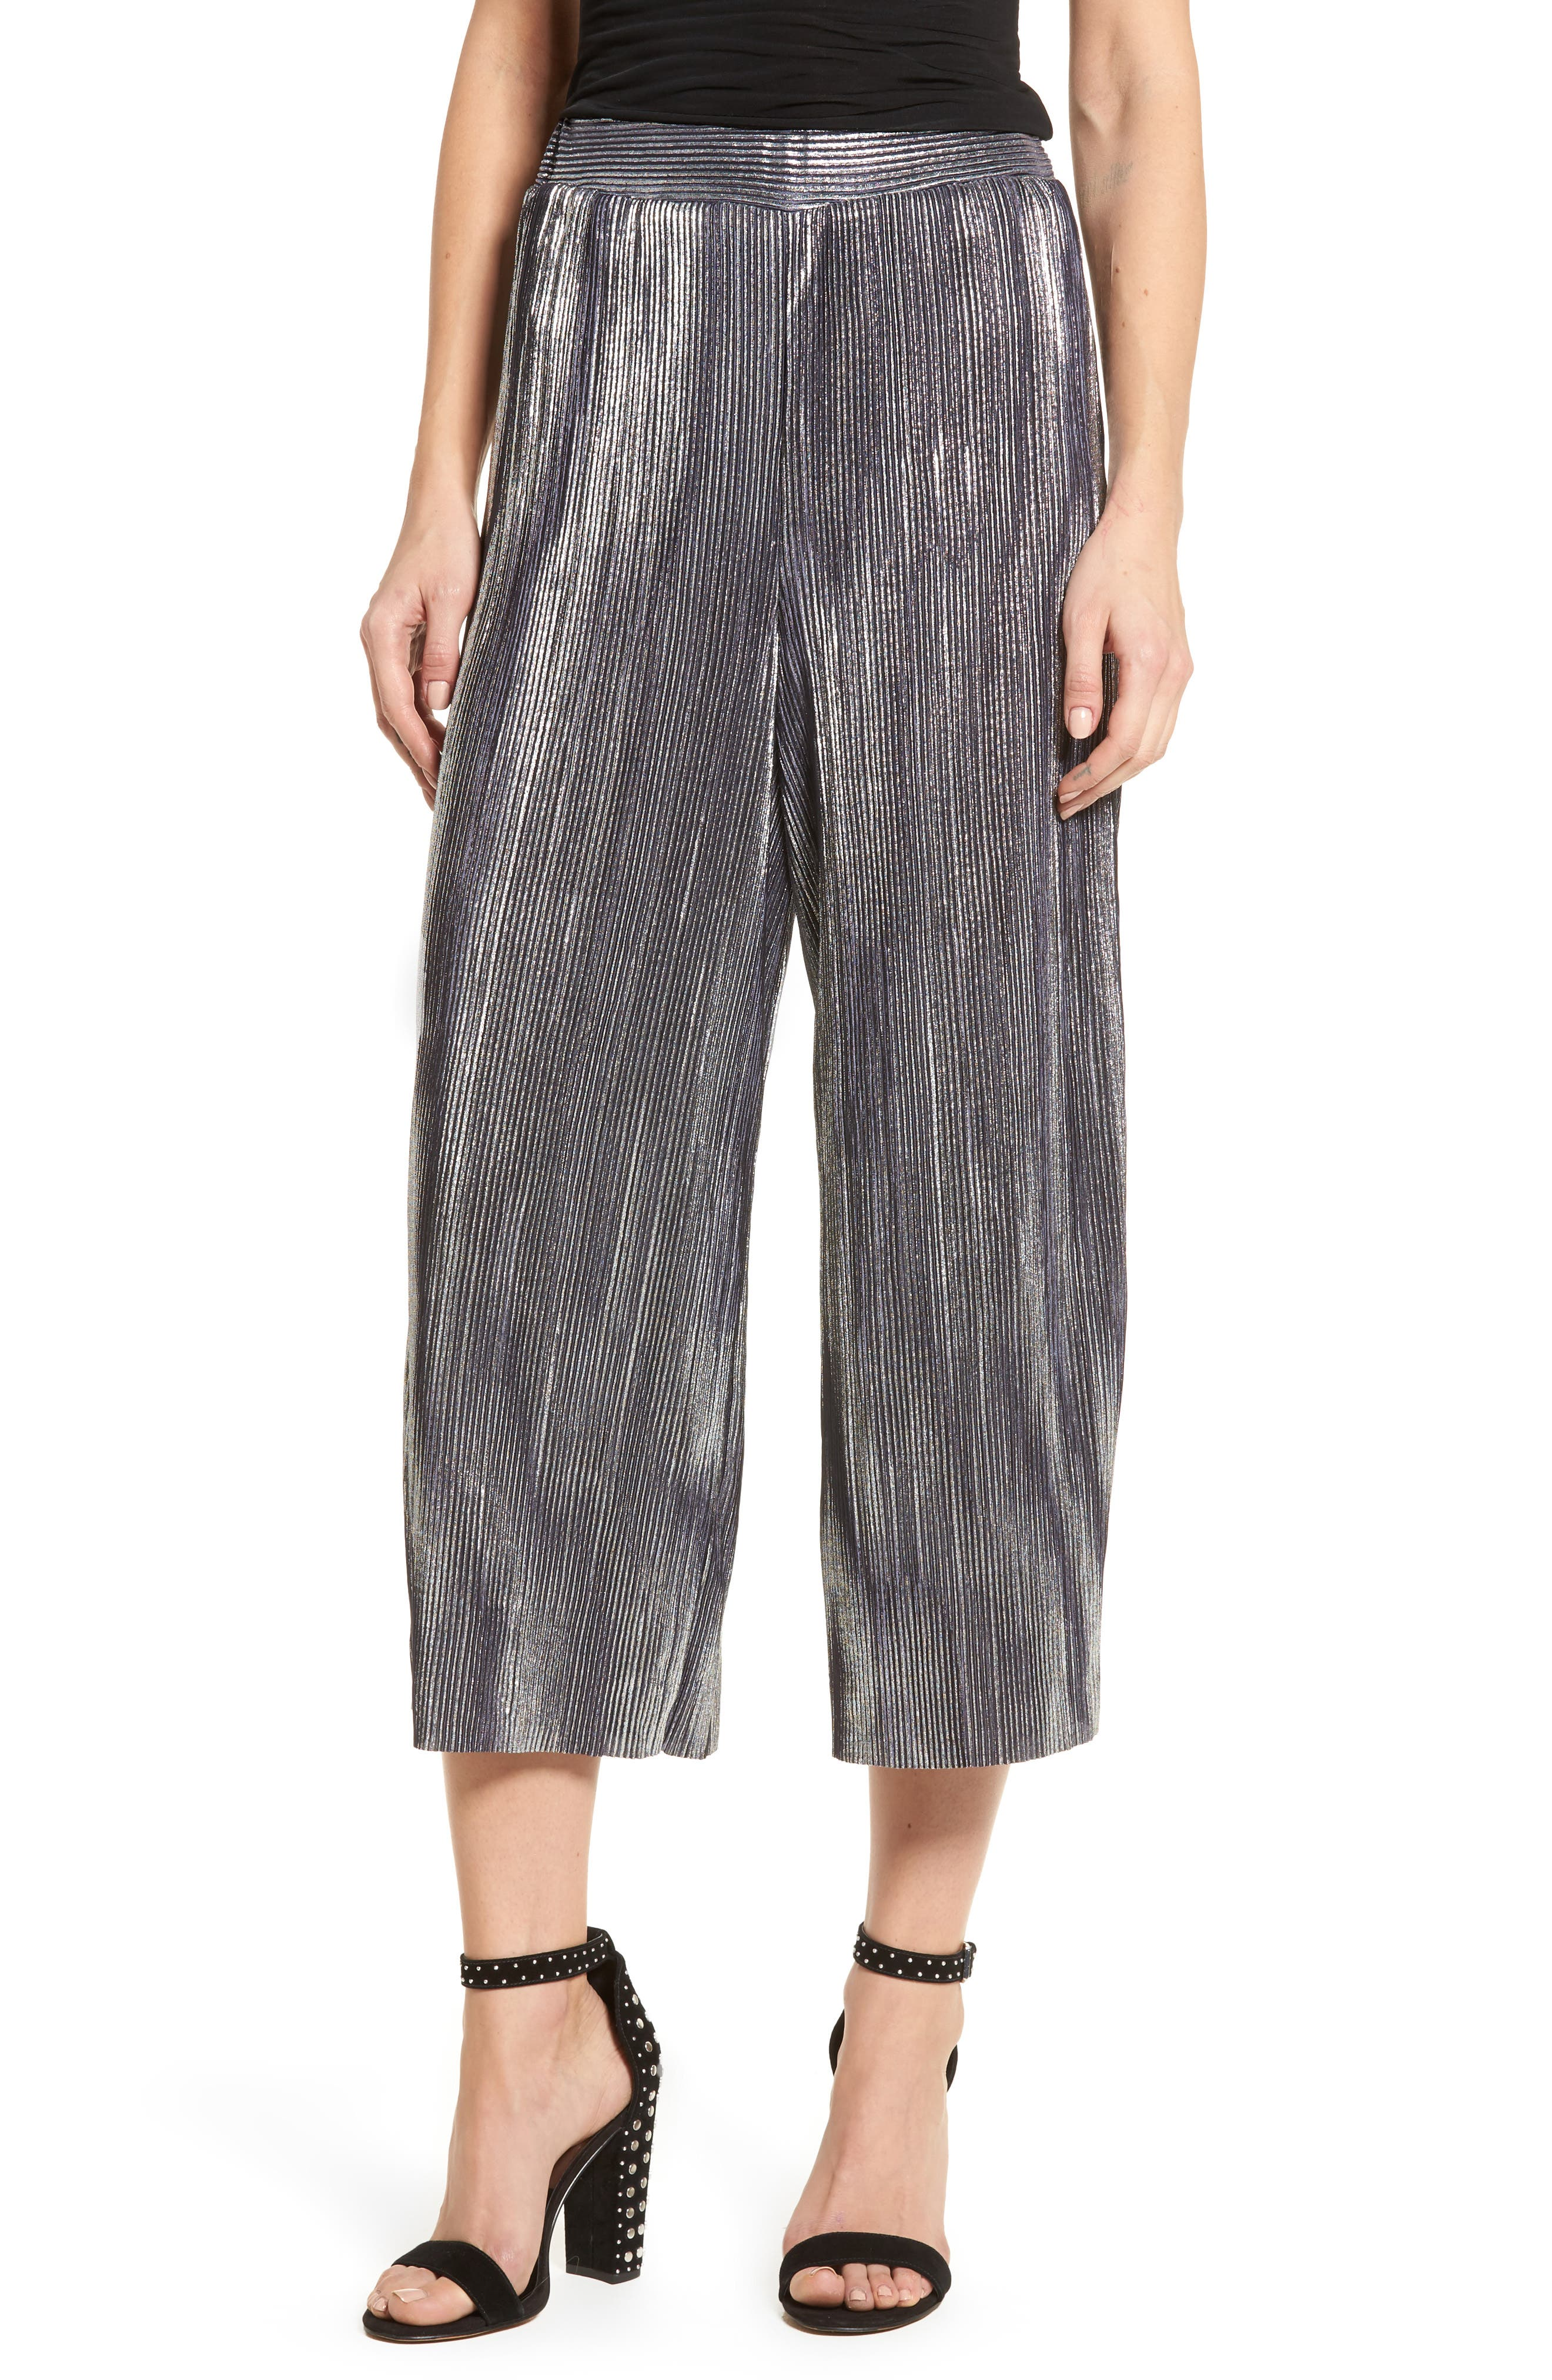 Alternate Image 1 Selected - Love, Fire Metallic Pleated Crop Pants